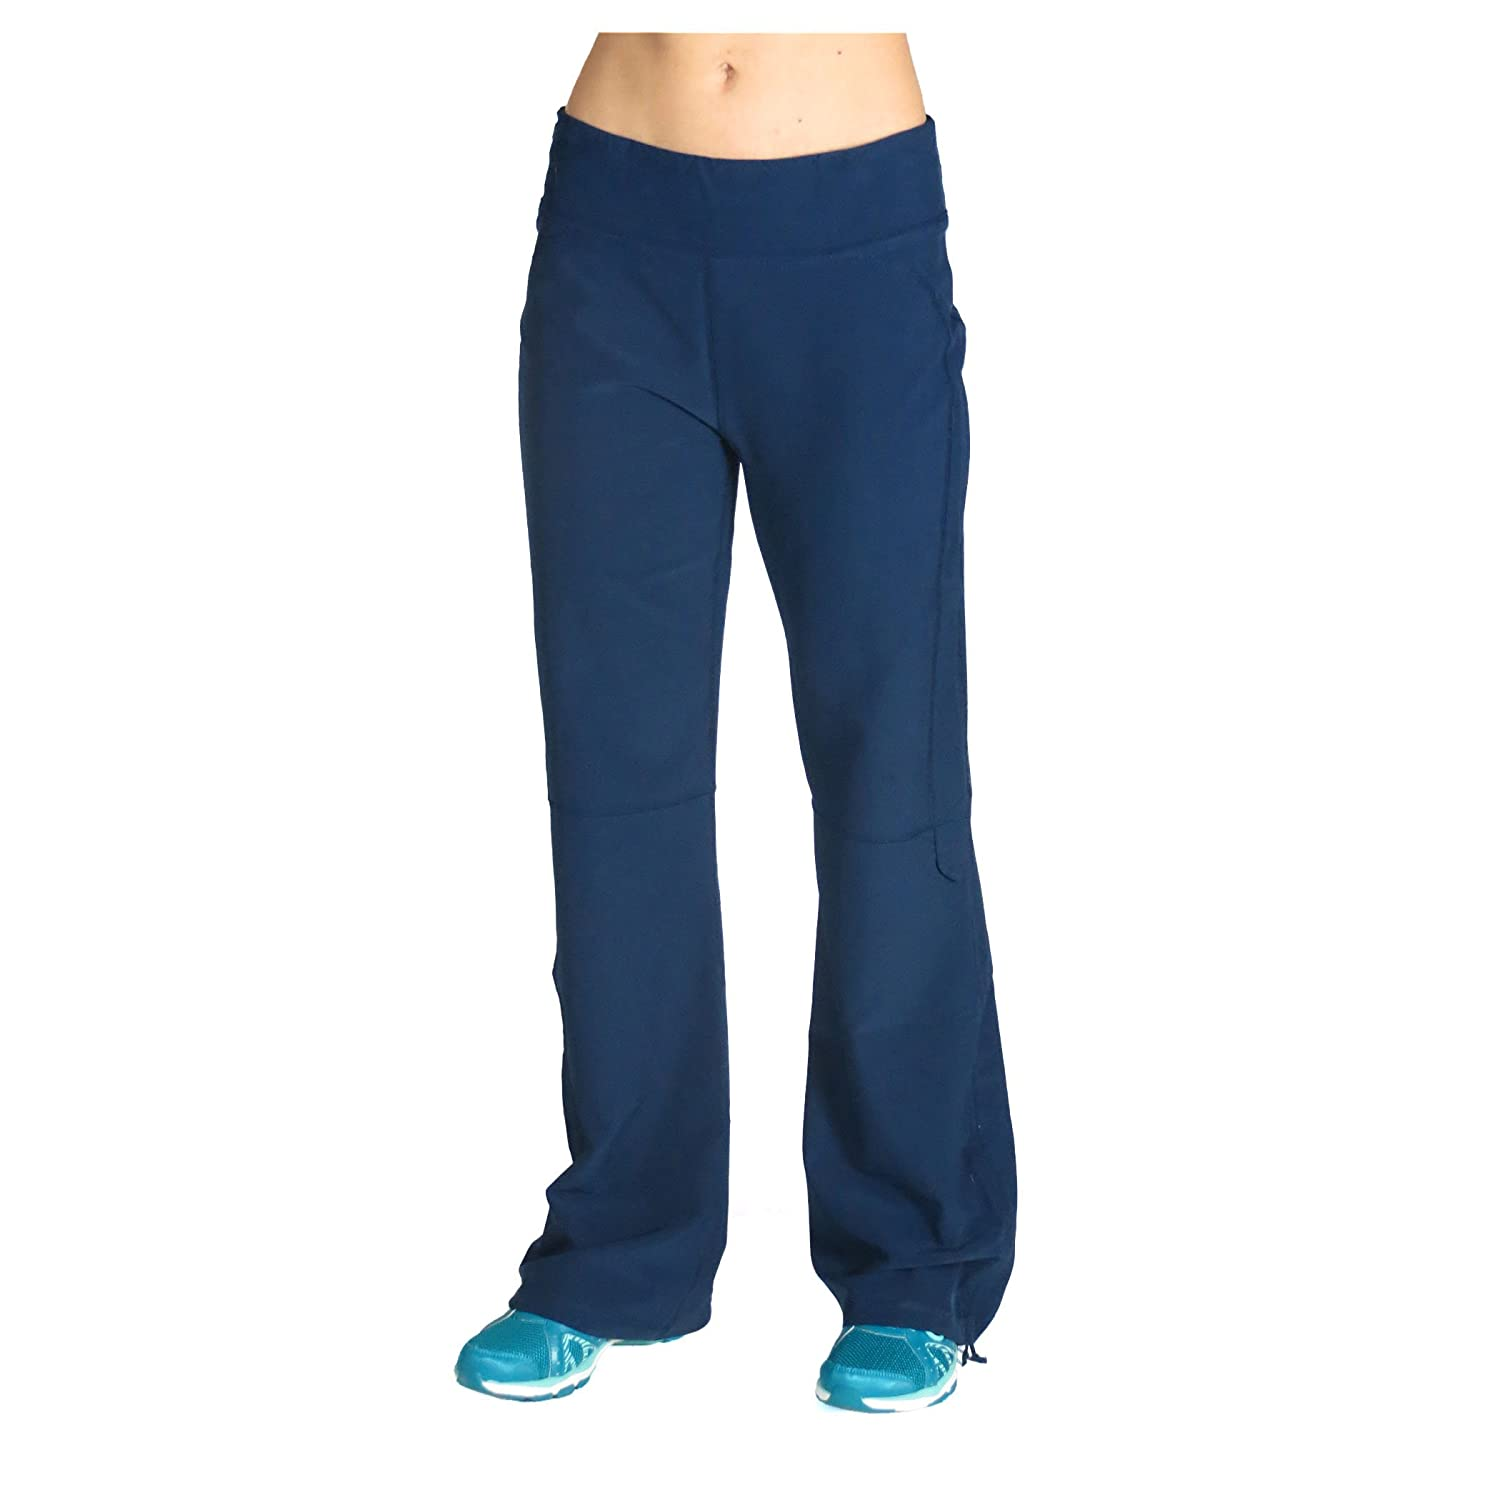 Alex + Abby Women's in-Motion Pant